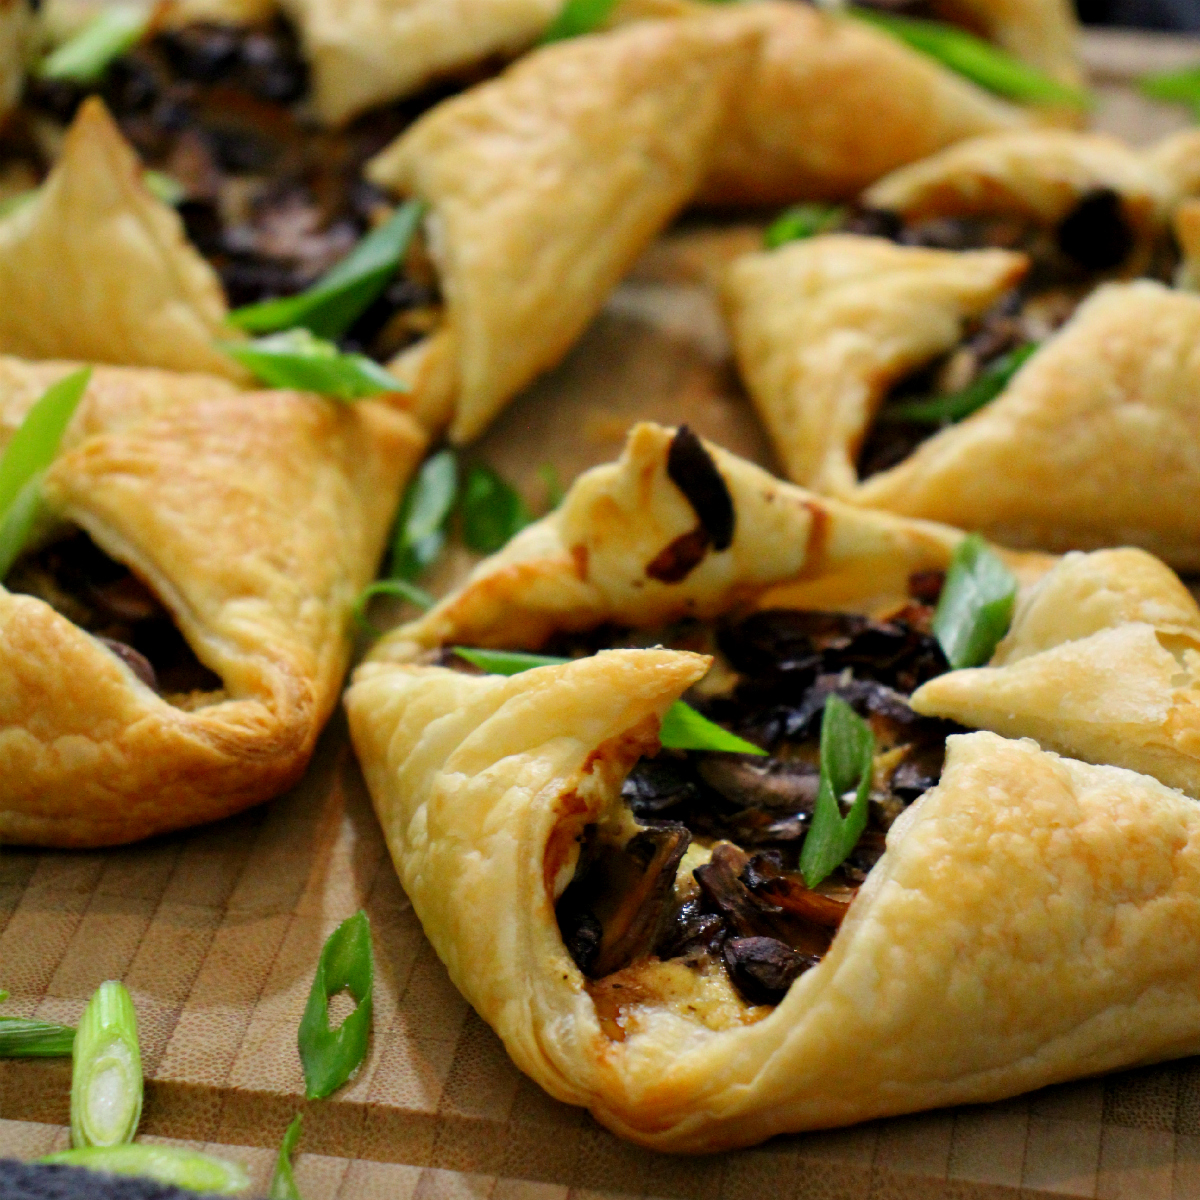 Vegan Mushroom Quiche Puff Pastry Folds - The Vegan Eskimo